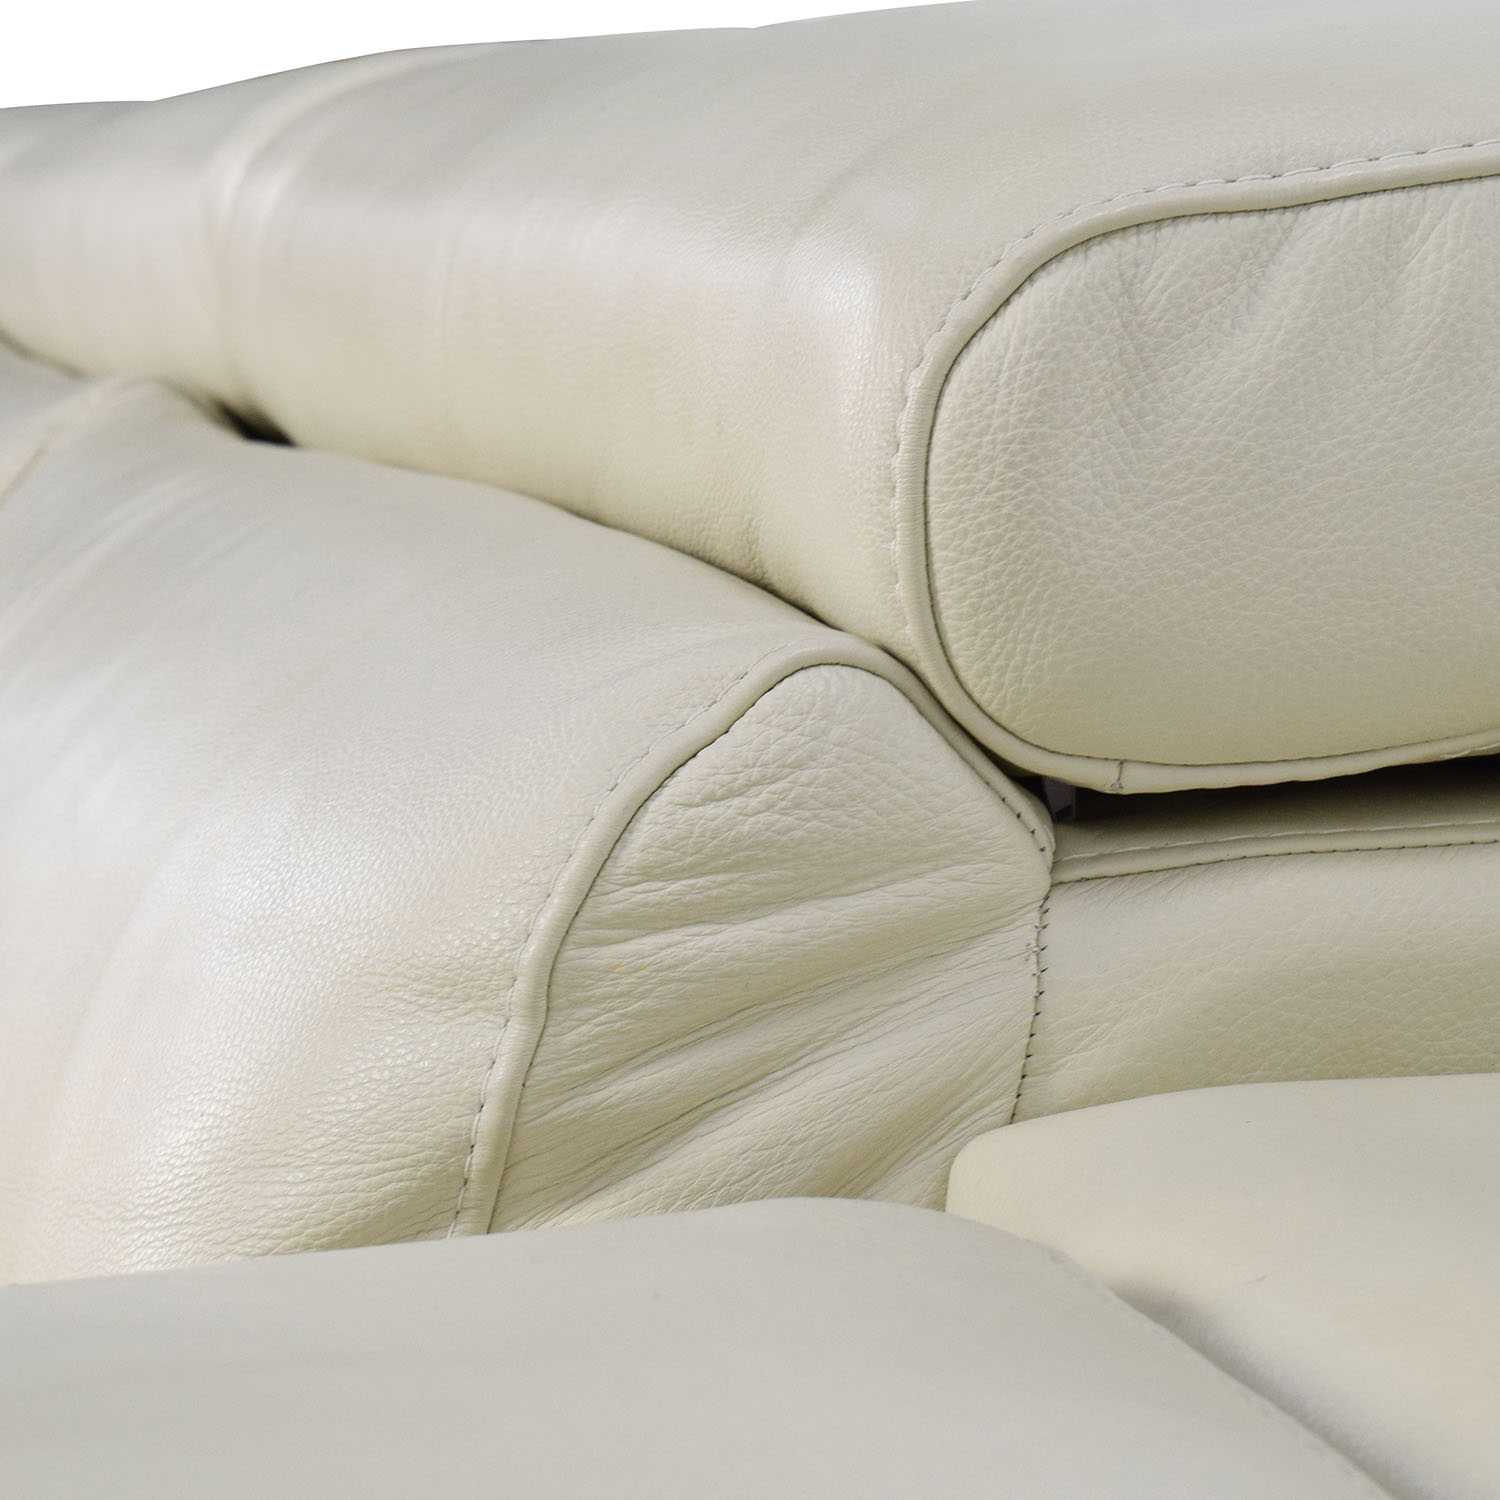 Second Hand Leather Sofas Somerset: L-Shaped Cream Leather Sectional Sofa / Sofas